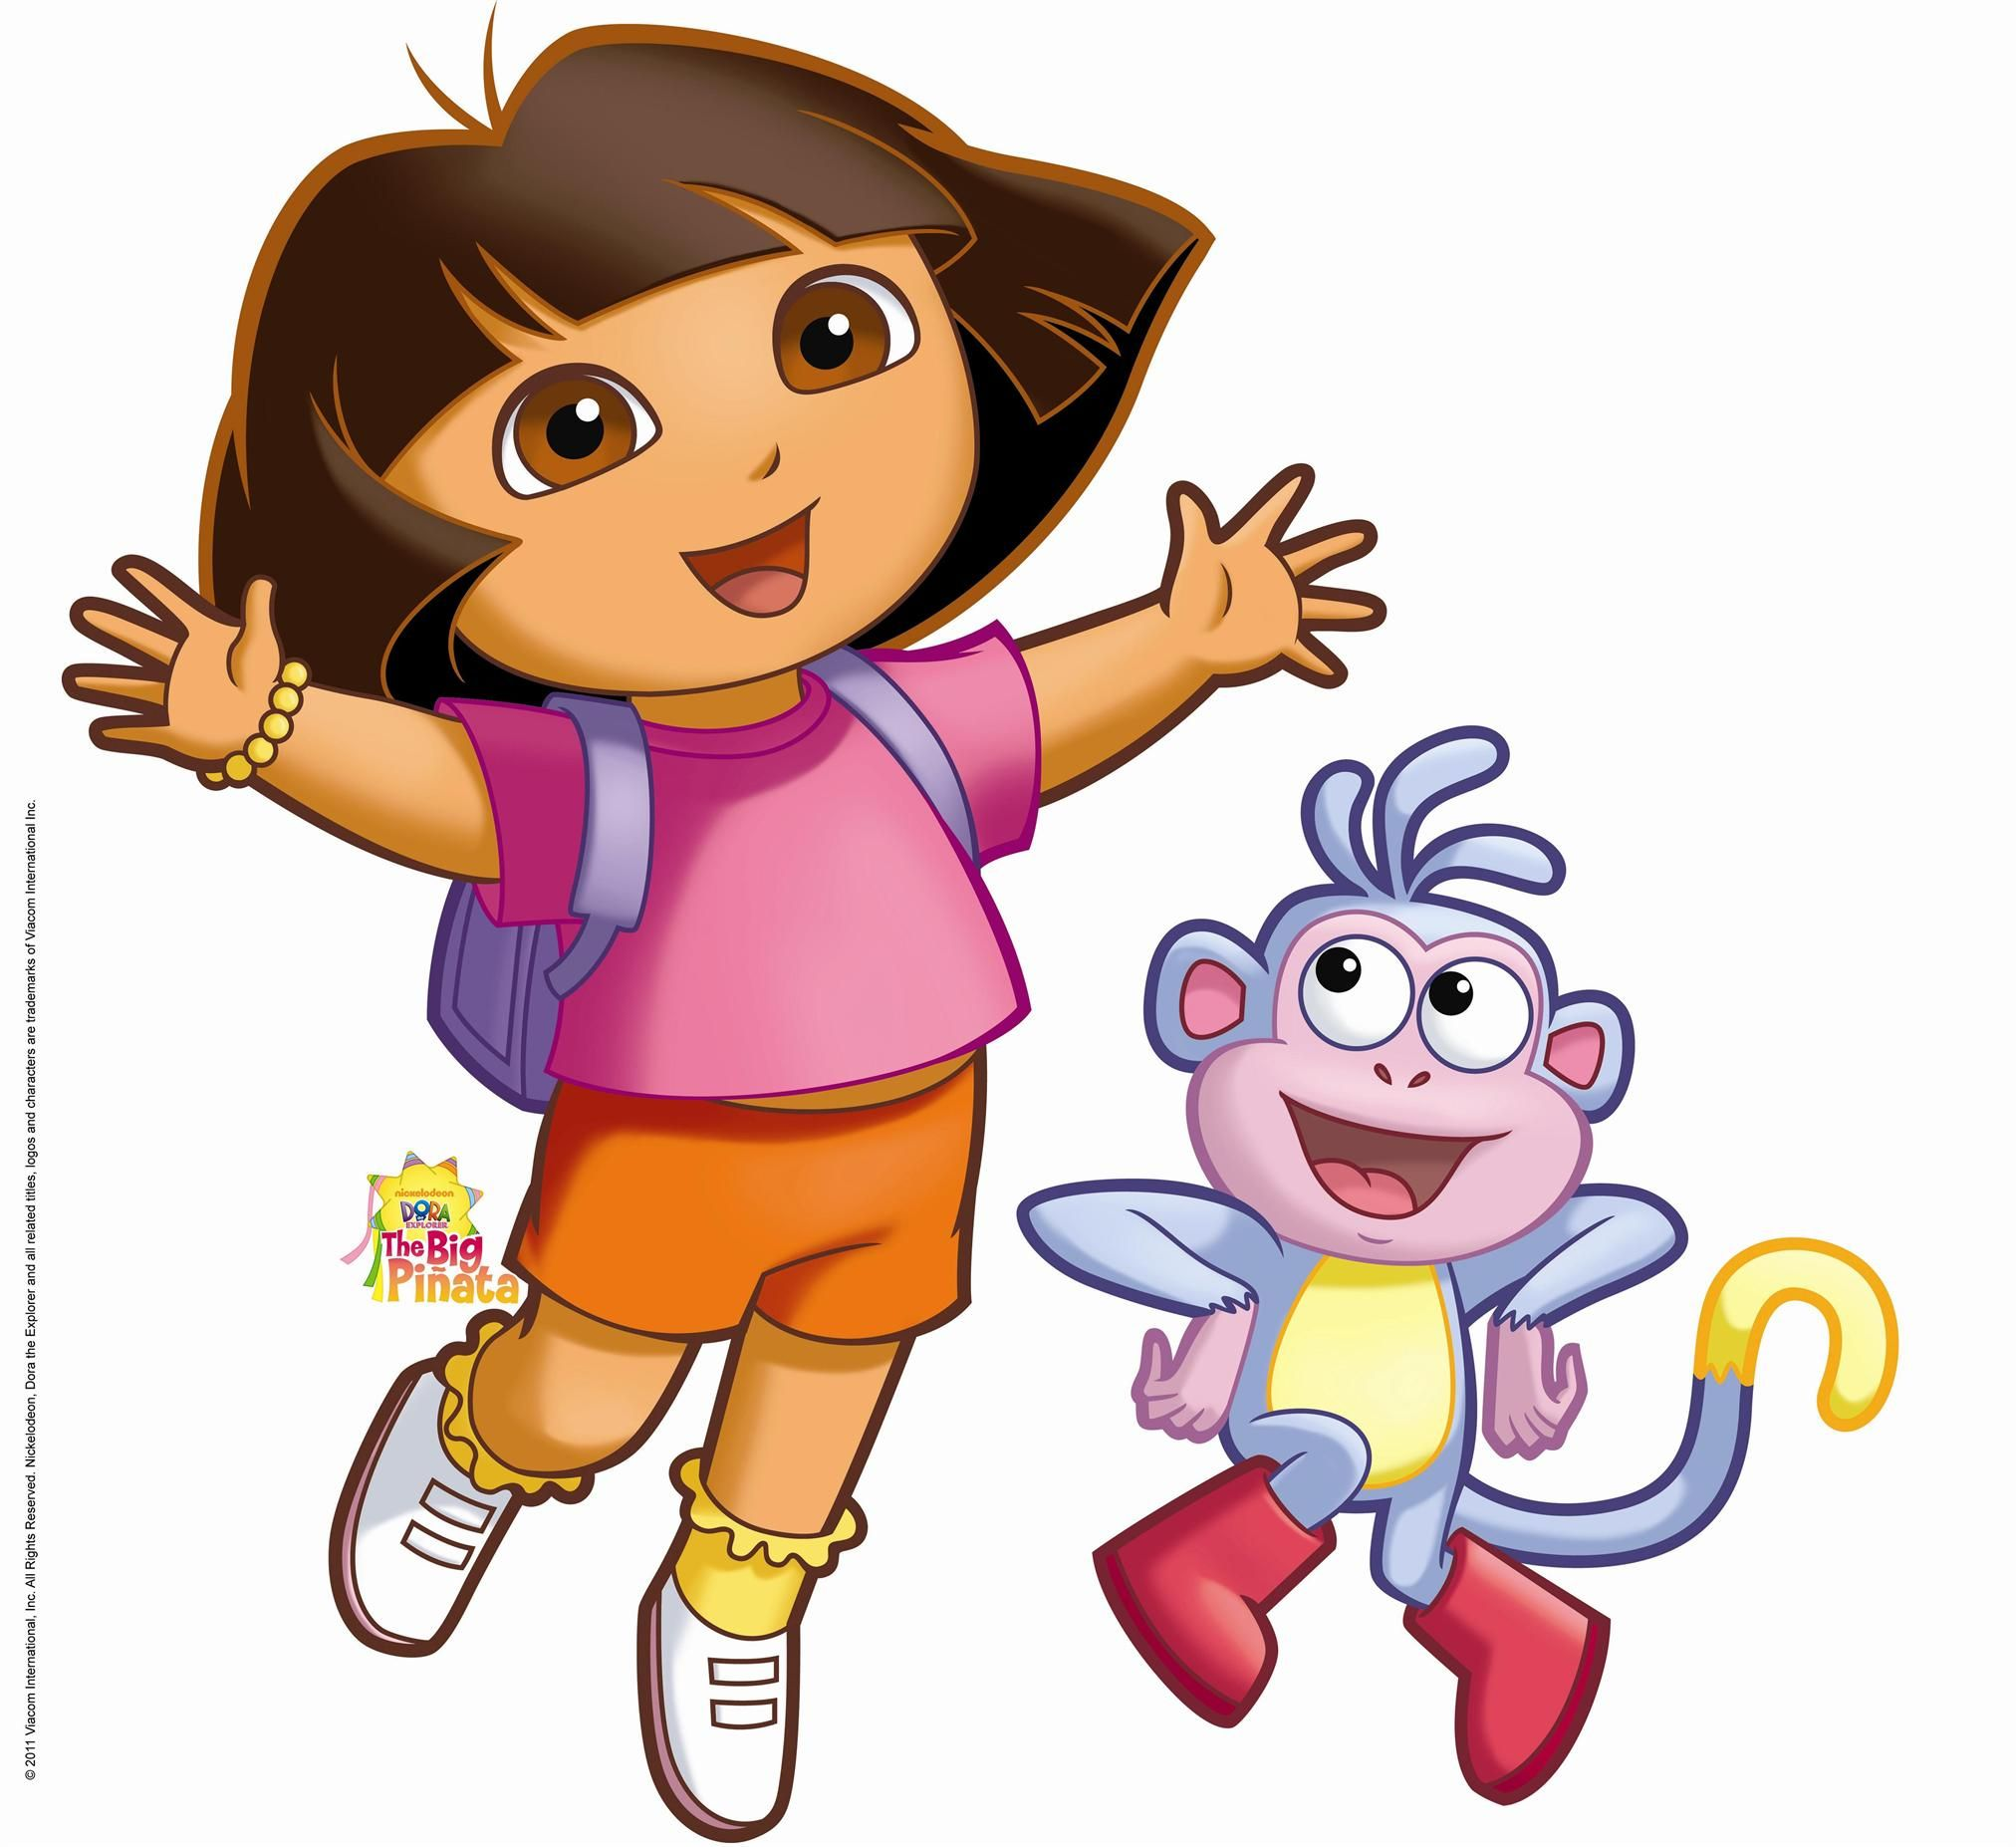 Dora wallpaper hd hd wallpapers pinterest dora wallpaper hd voltagebd Image collections